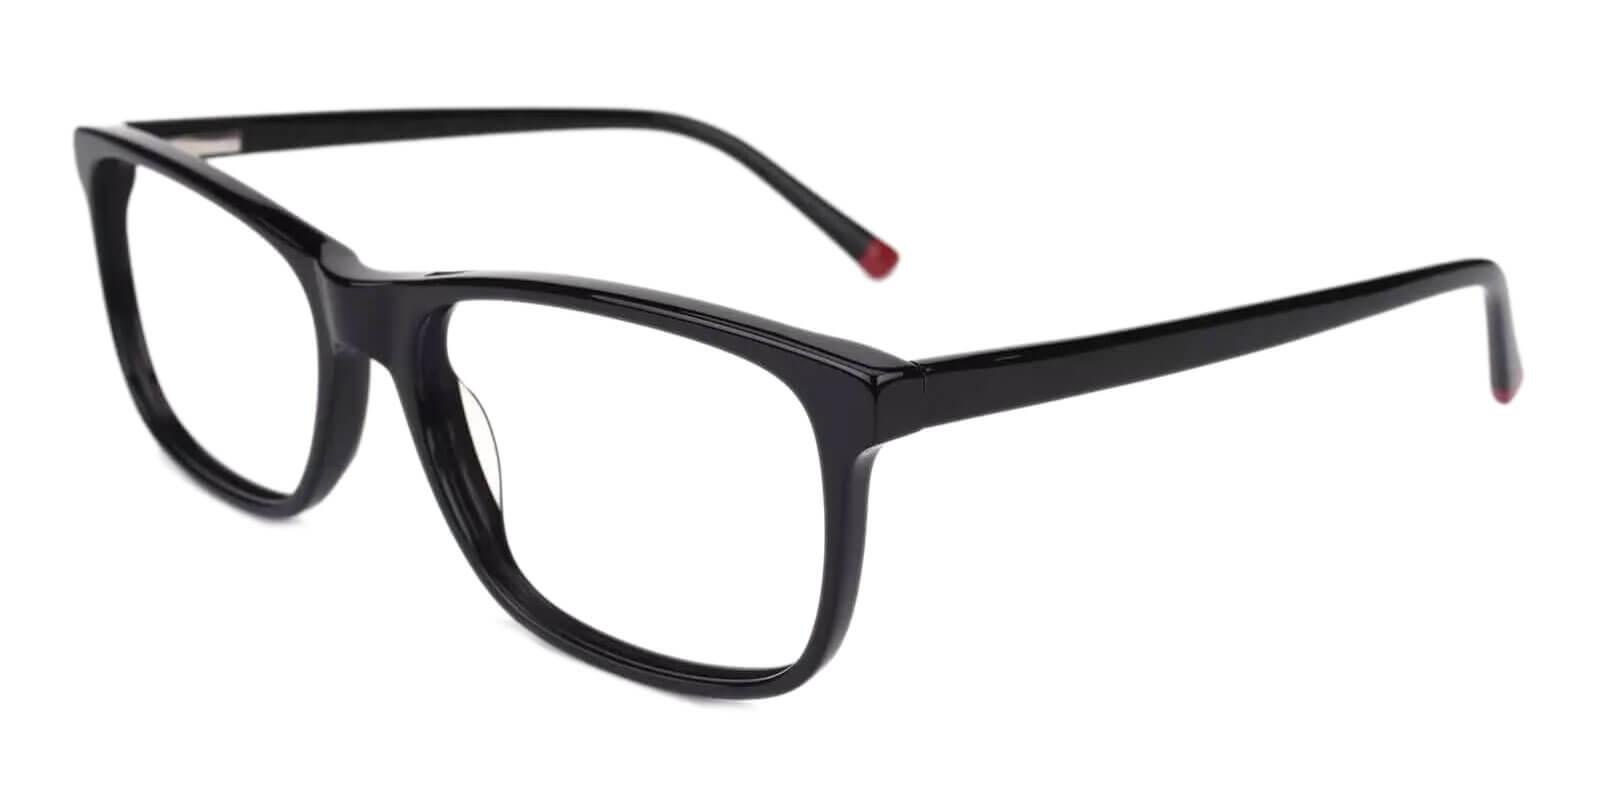 Gilcres Black Acetate Eyeglasses , SpringHinges , UniversalBridgeFit Frames from ABBE Glasses